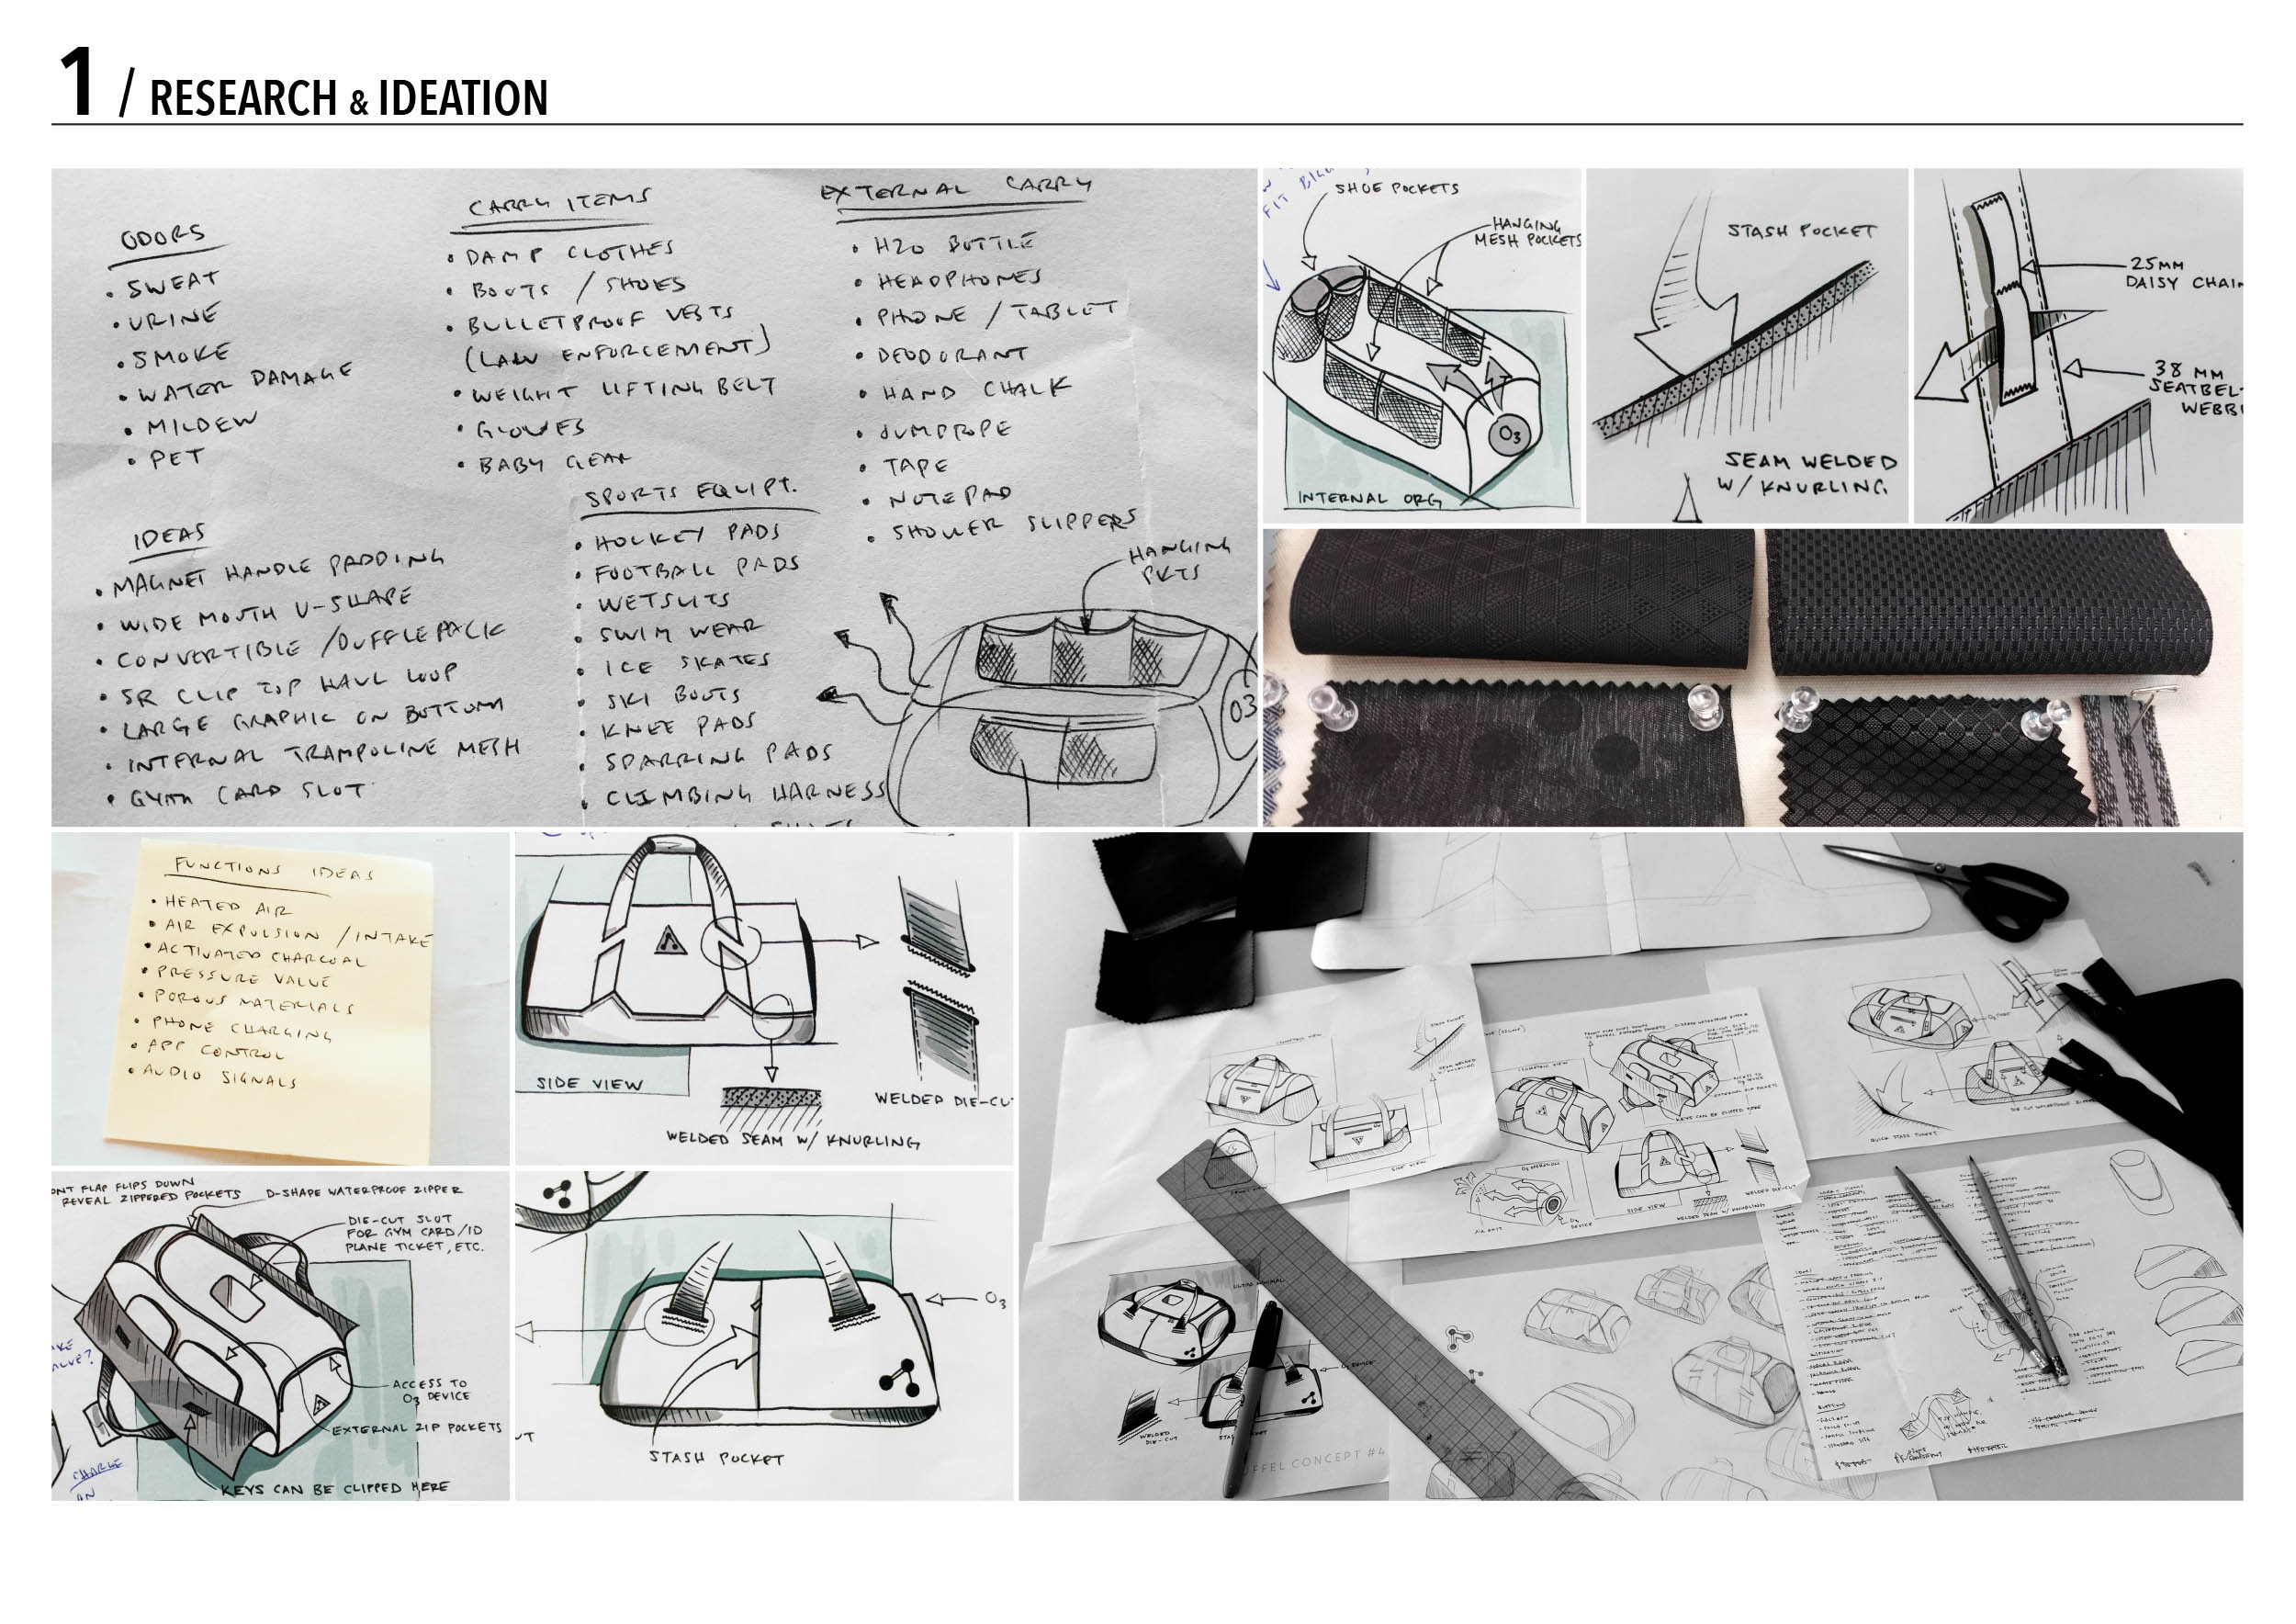 Paqsule Duffle Product Design Research Ideation